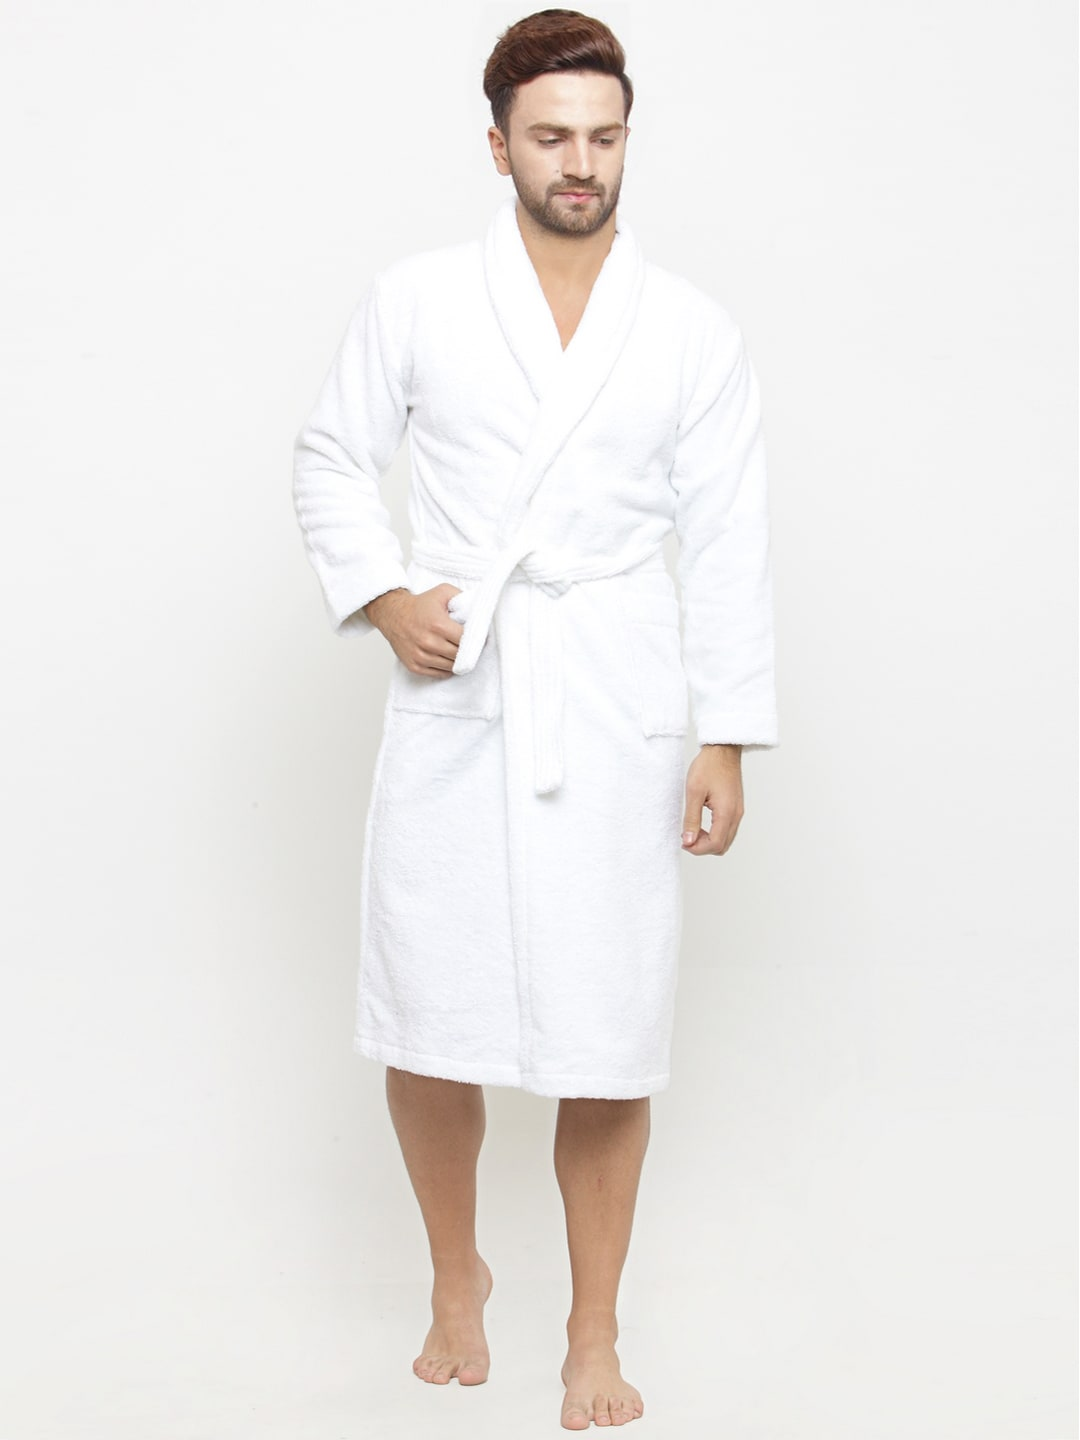 Bath Robe - Buy Bath Robes Online in India  6cdda3b2b